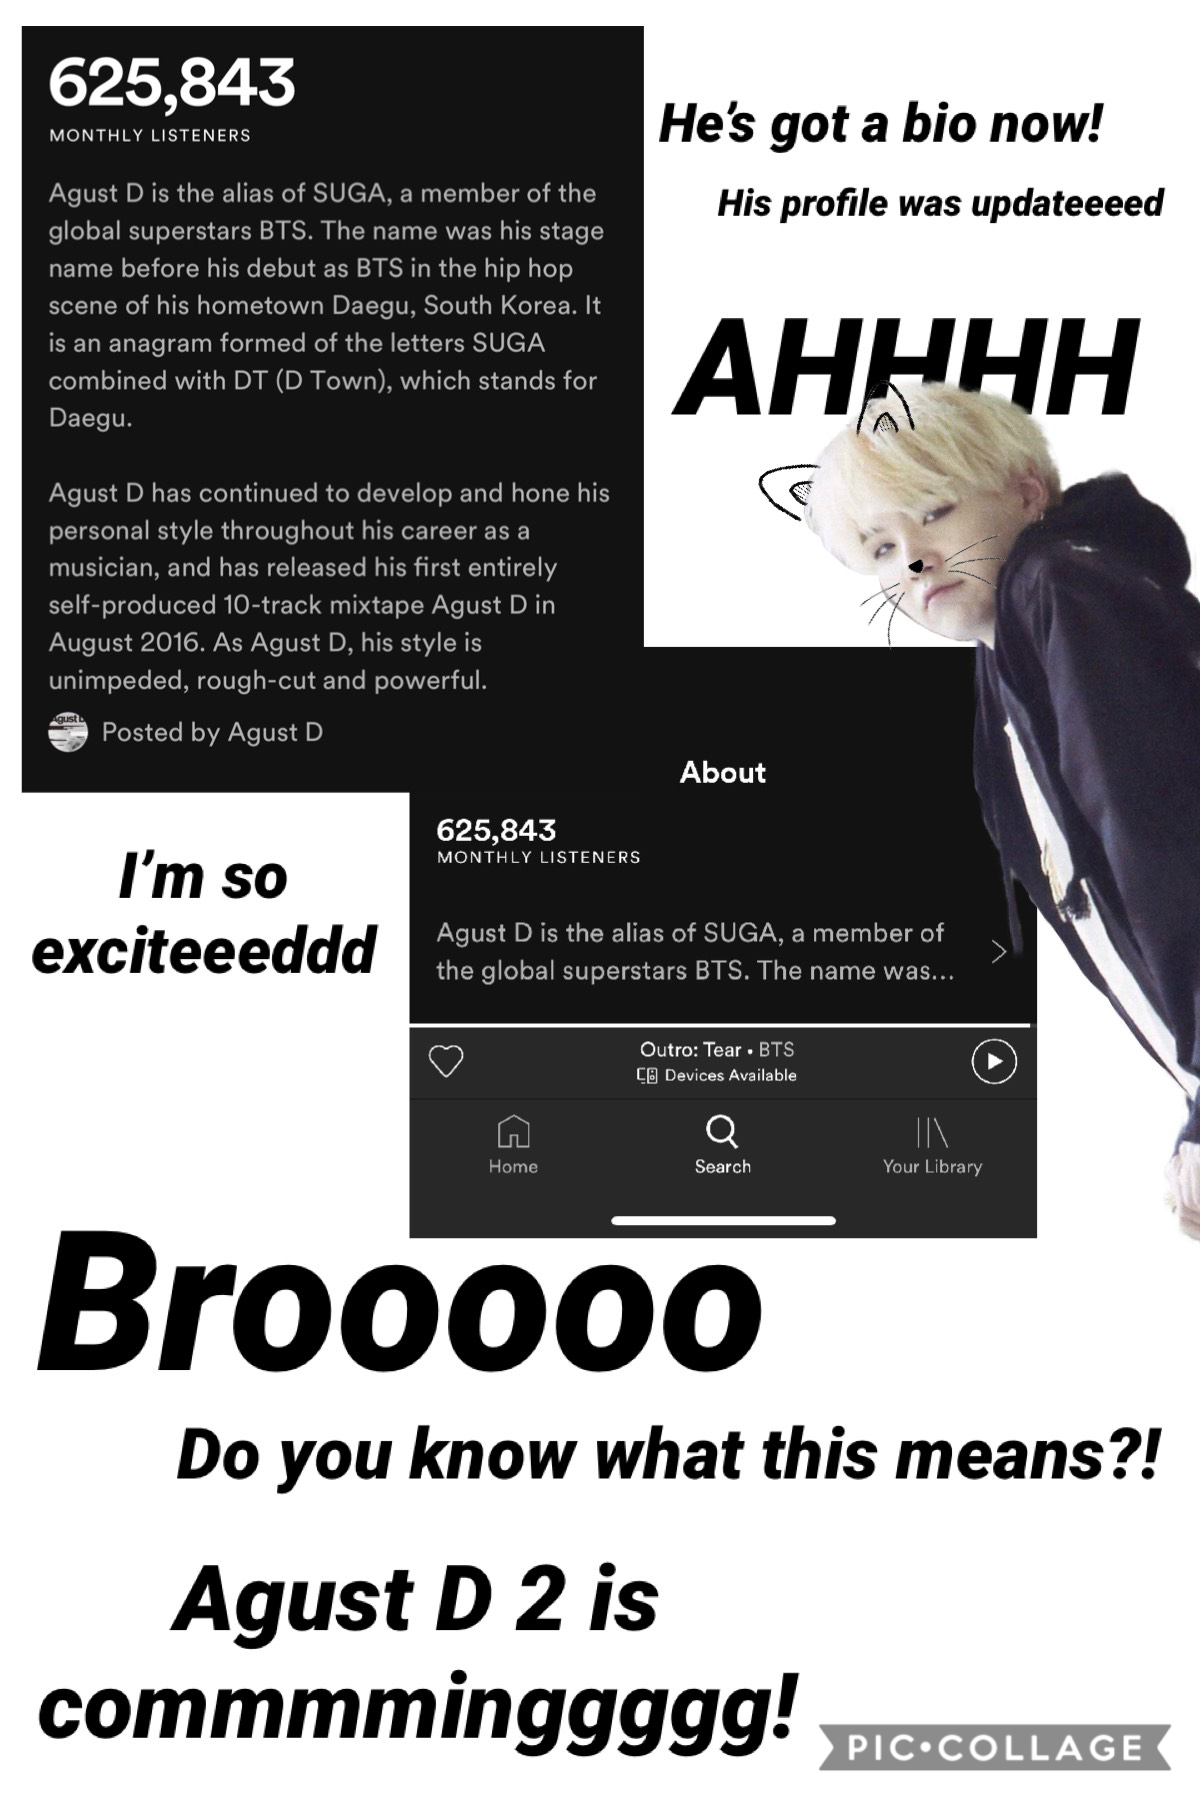 Agust D stans where y'all at?   🙌🏻🙌🏻🙌🏻🙌🏻🙌🏻🙌🏻🙌🏻   I literally saw this and started screaaaamingg I'm so excited ahhhhh   I can't waiiiittttt 🙌🏻🙌🏻🙌🏻